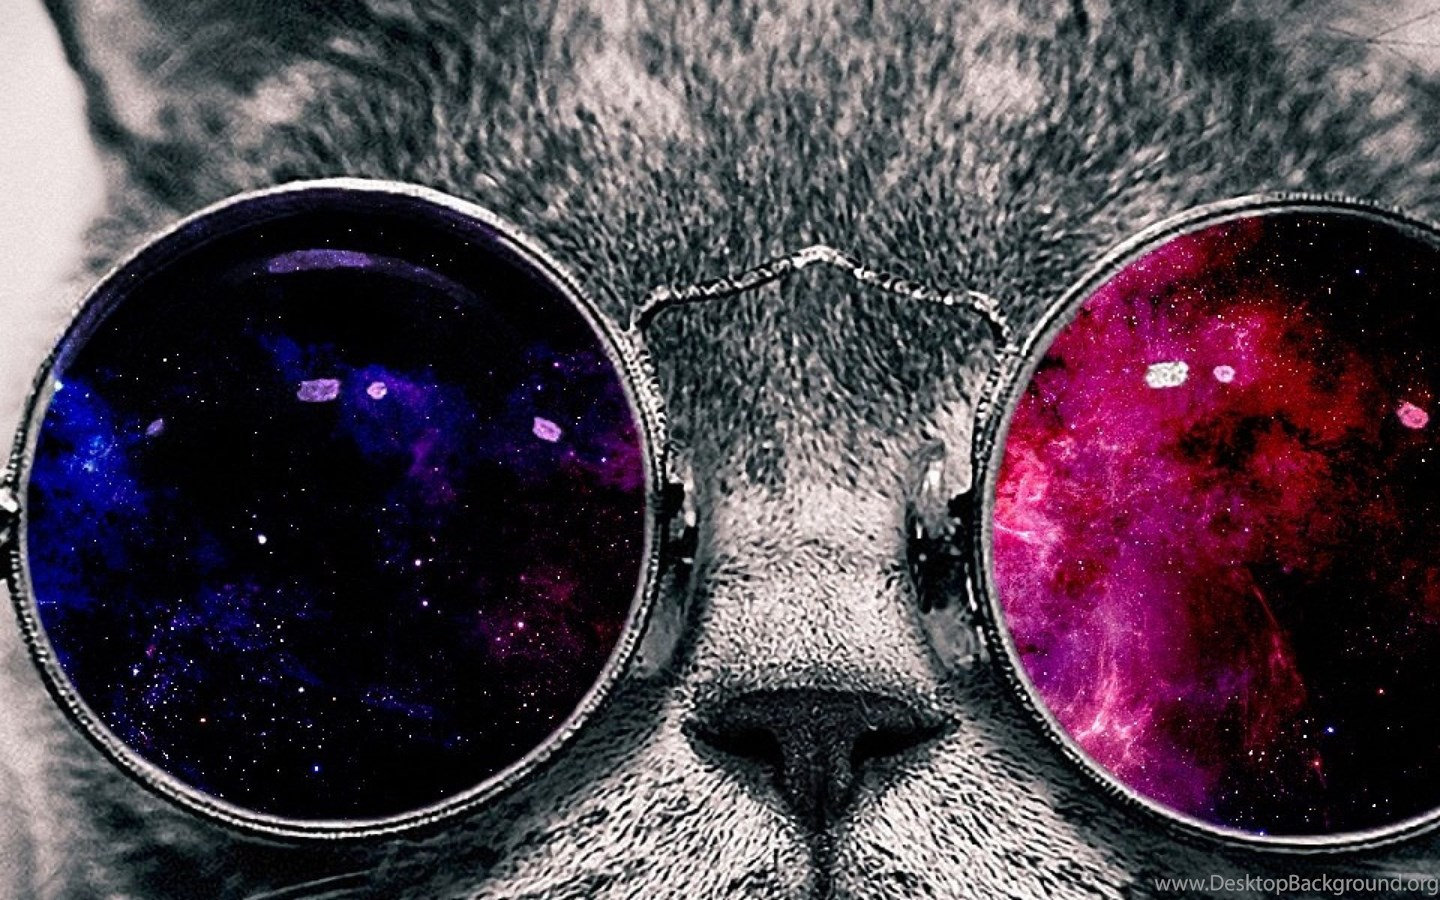 space galaxy cat with glasses  page 5  pics about space